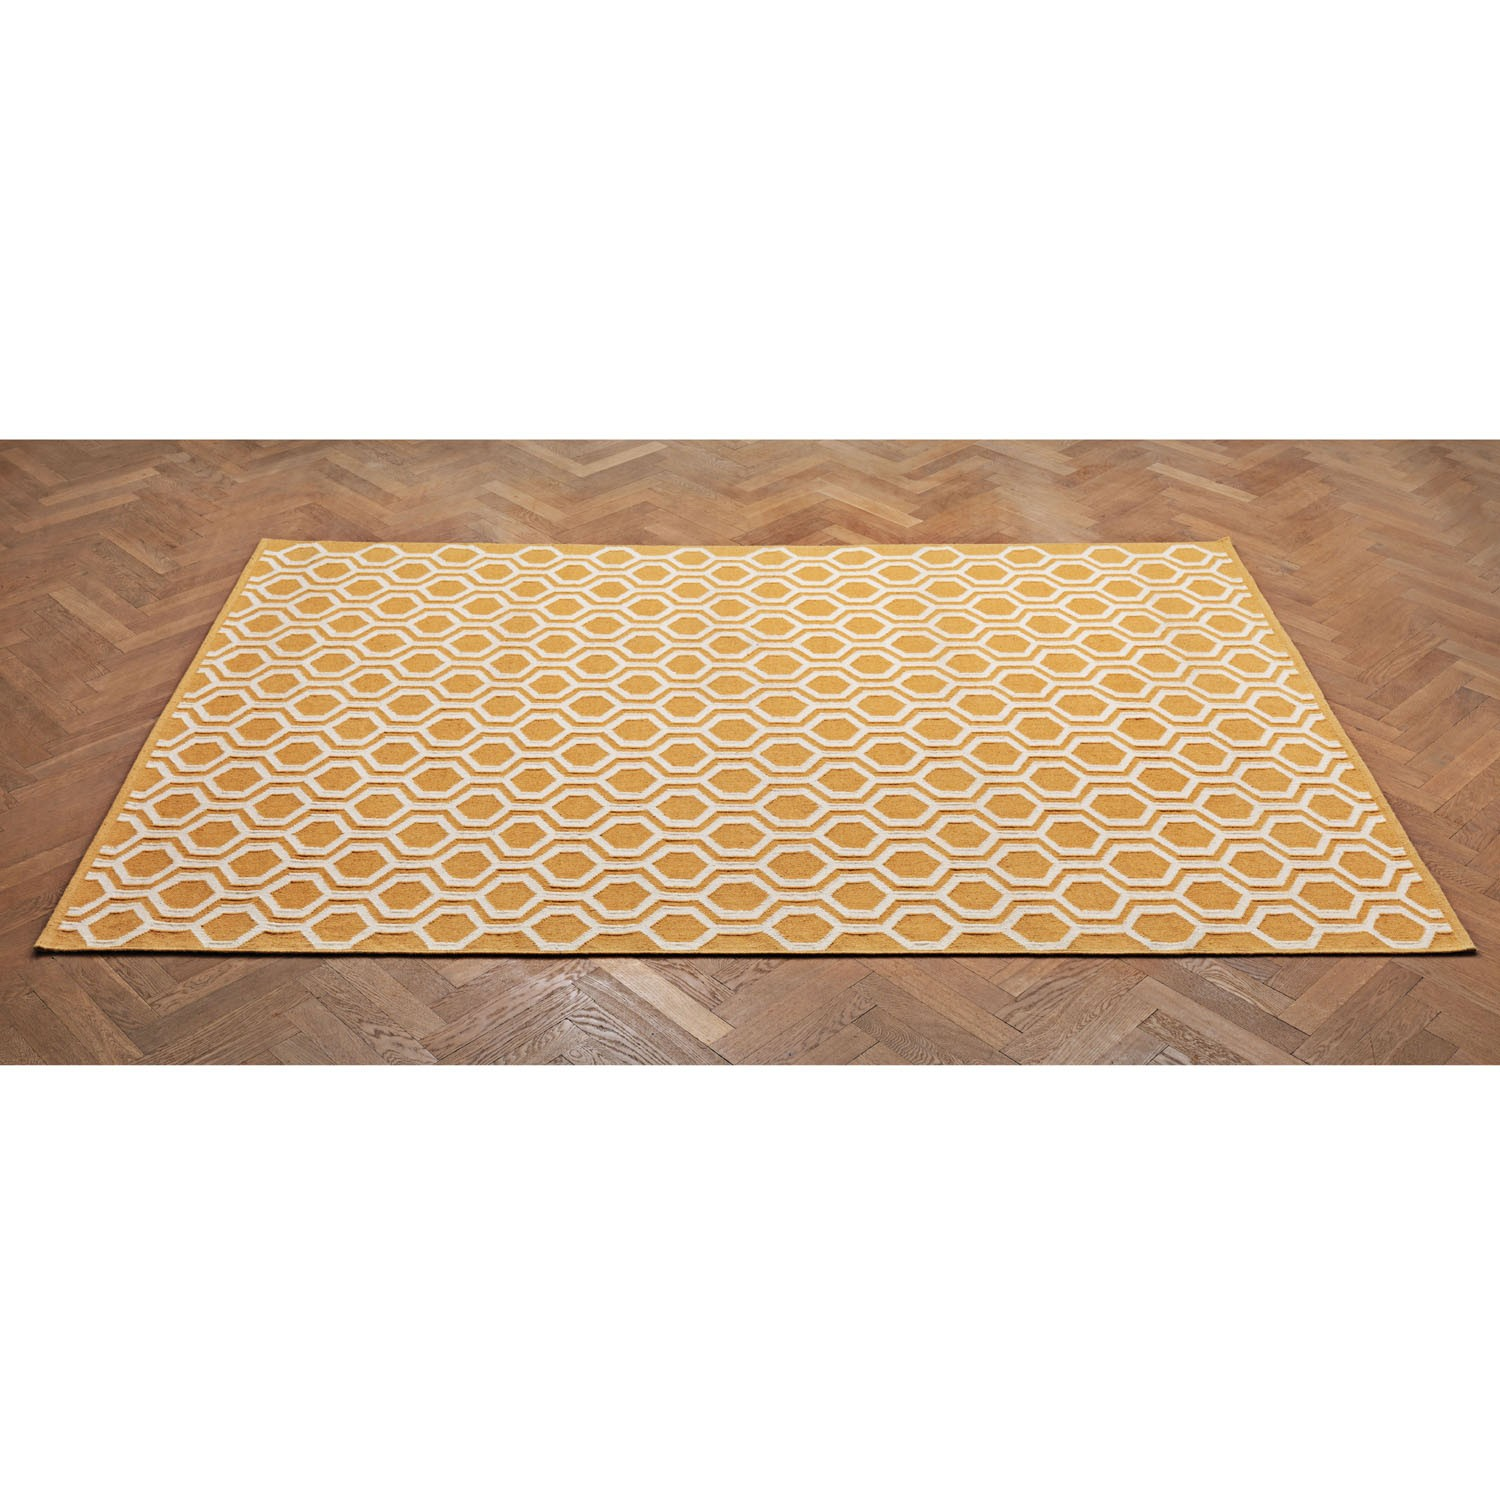 Large floor rug yellow white the blue door - Yellow kitchen floor mats ...